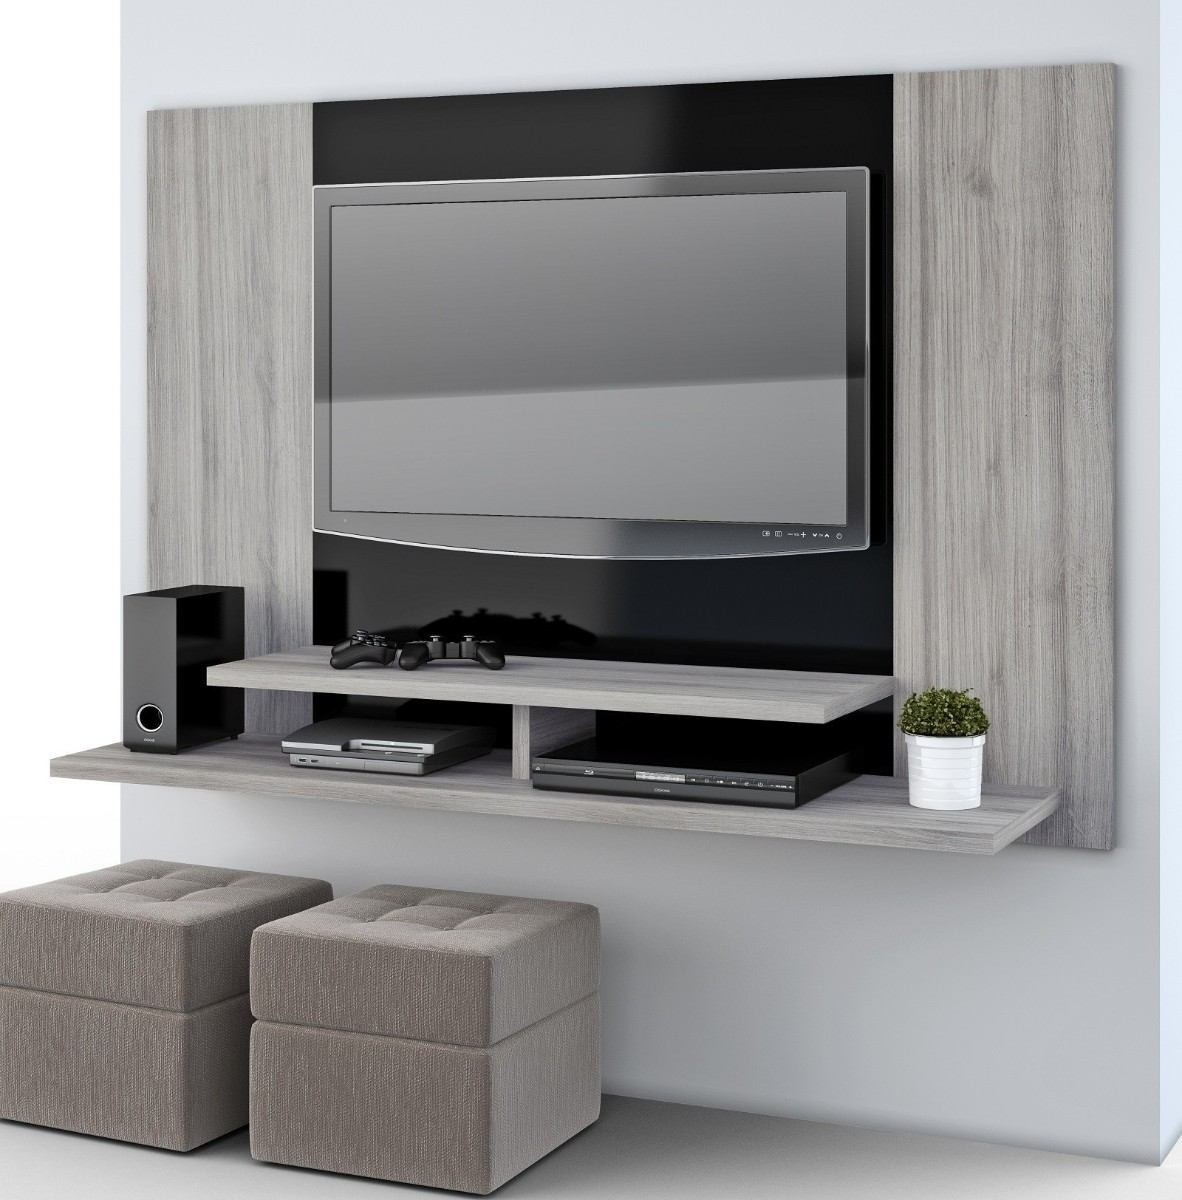 Mueble Flotante Para Tv Moderno Ref Manhatan   490000